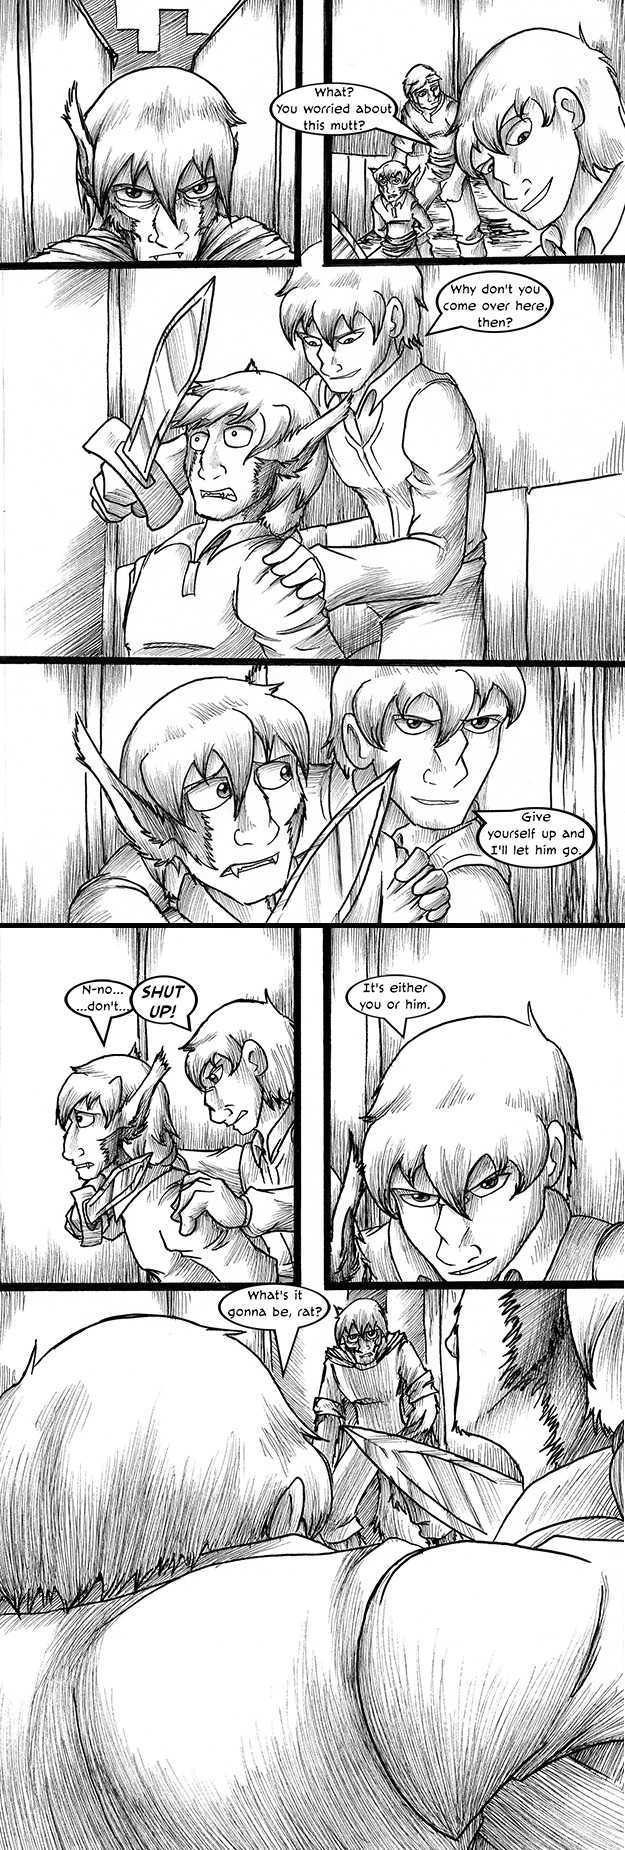 09 Page 09/10